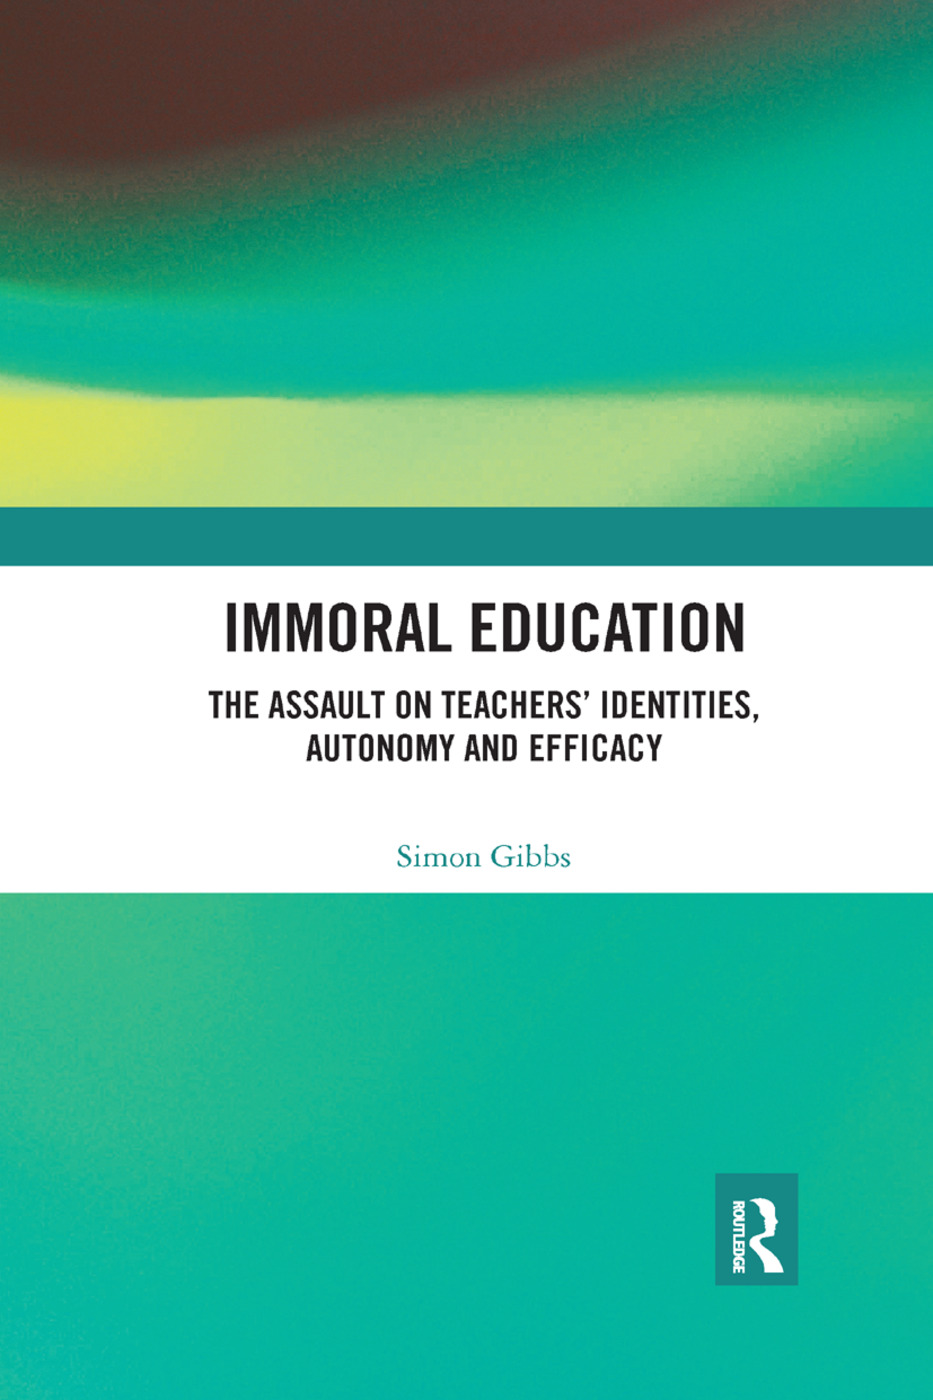 Immoral Education: The Assault on Teachers' Identities, Autonomy and Efficacy book cover